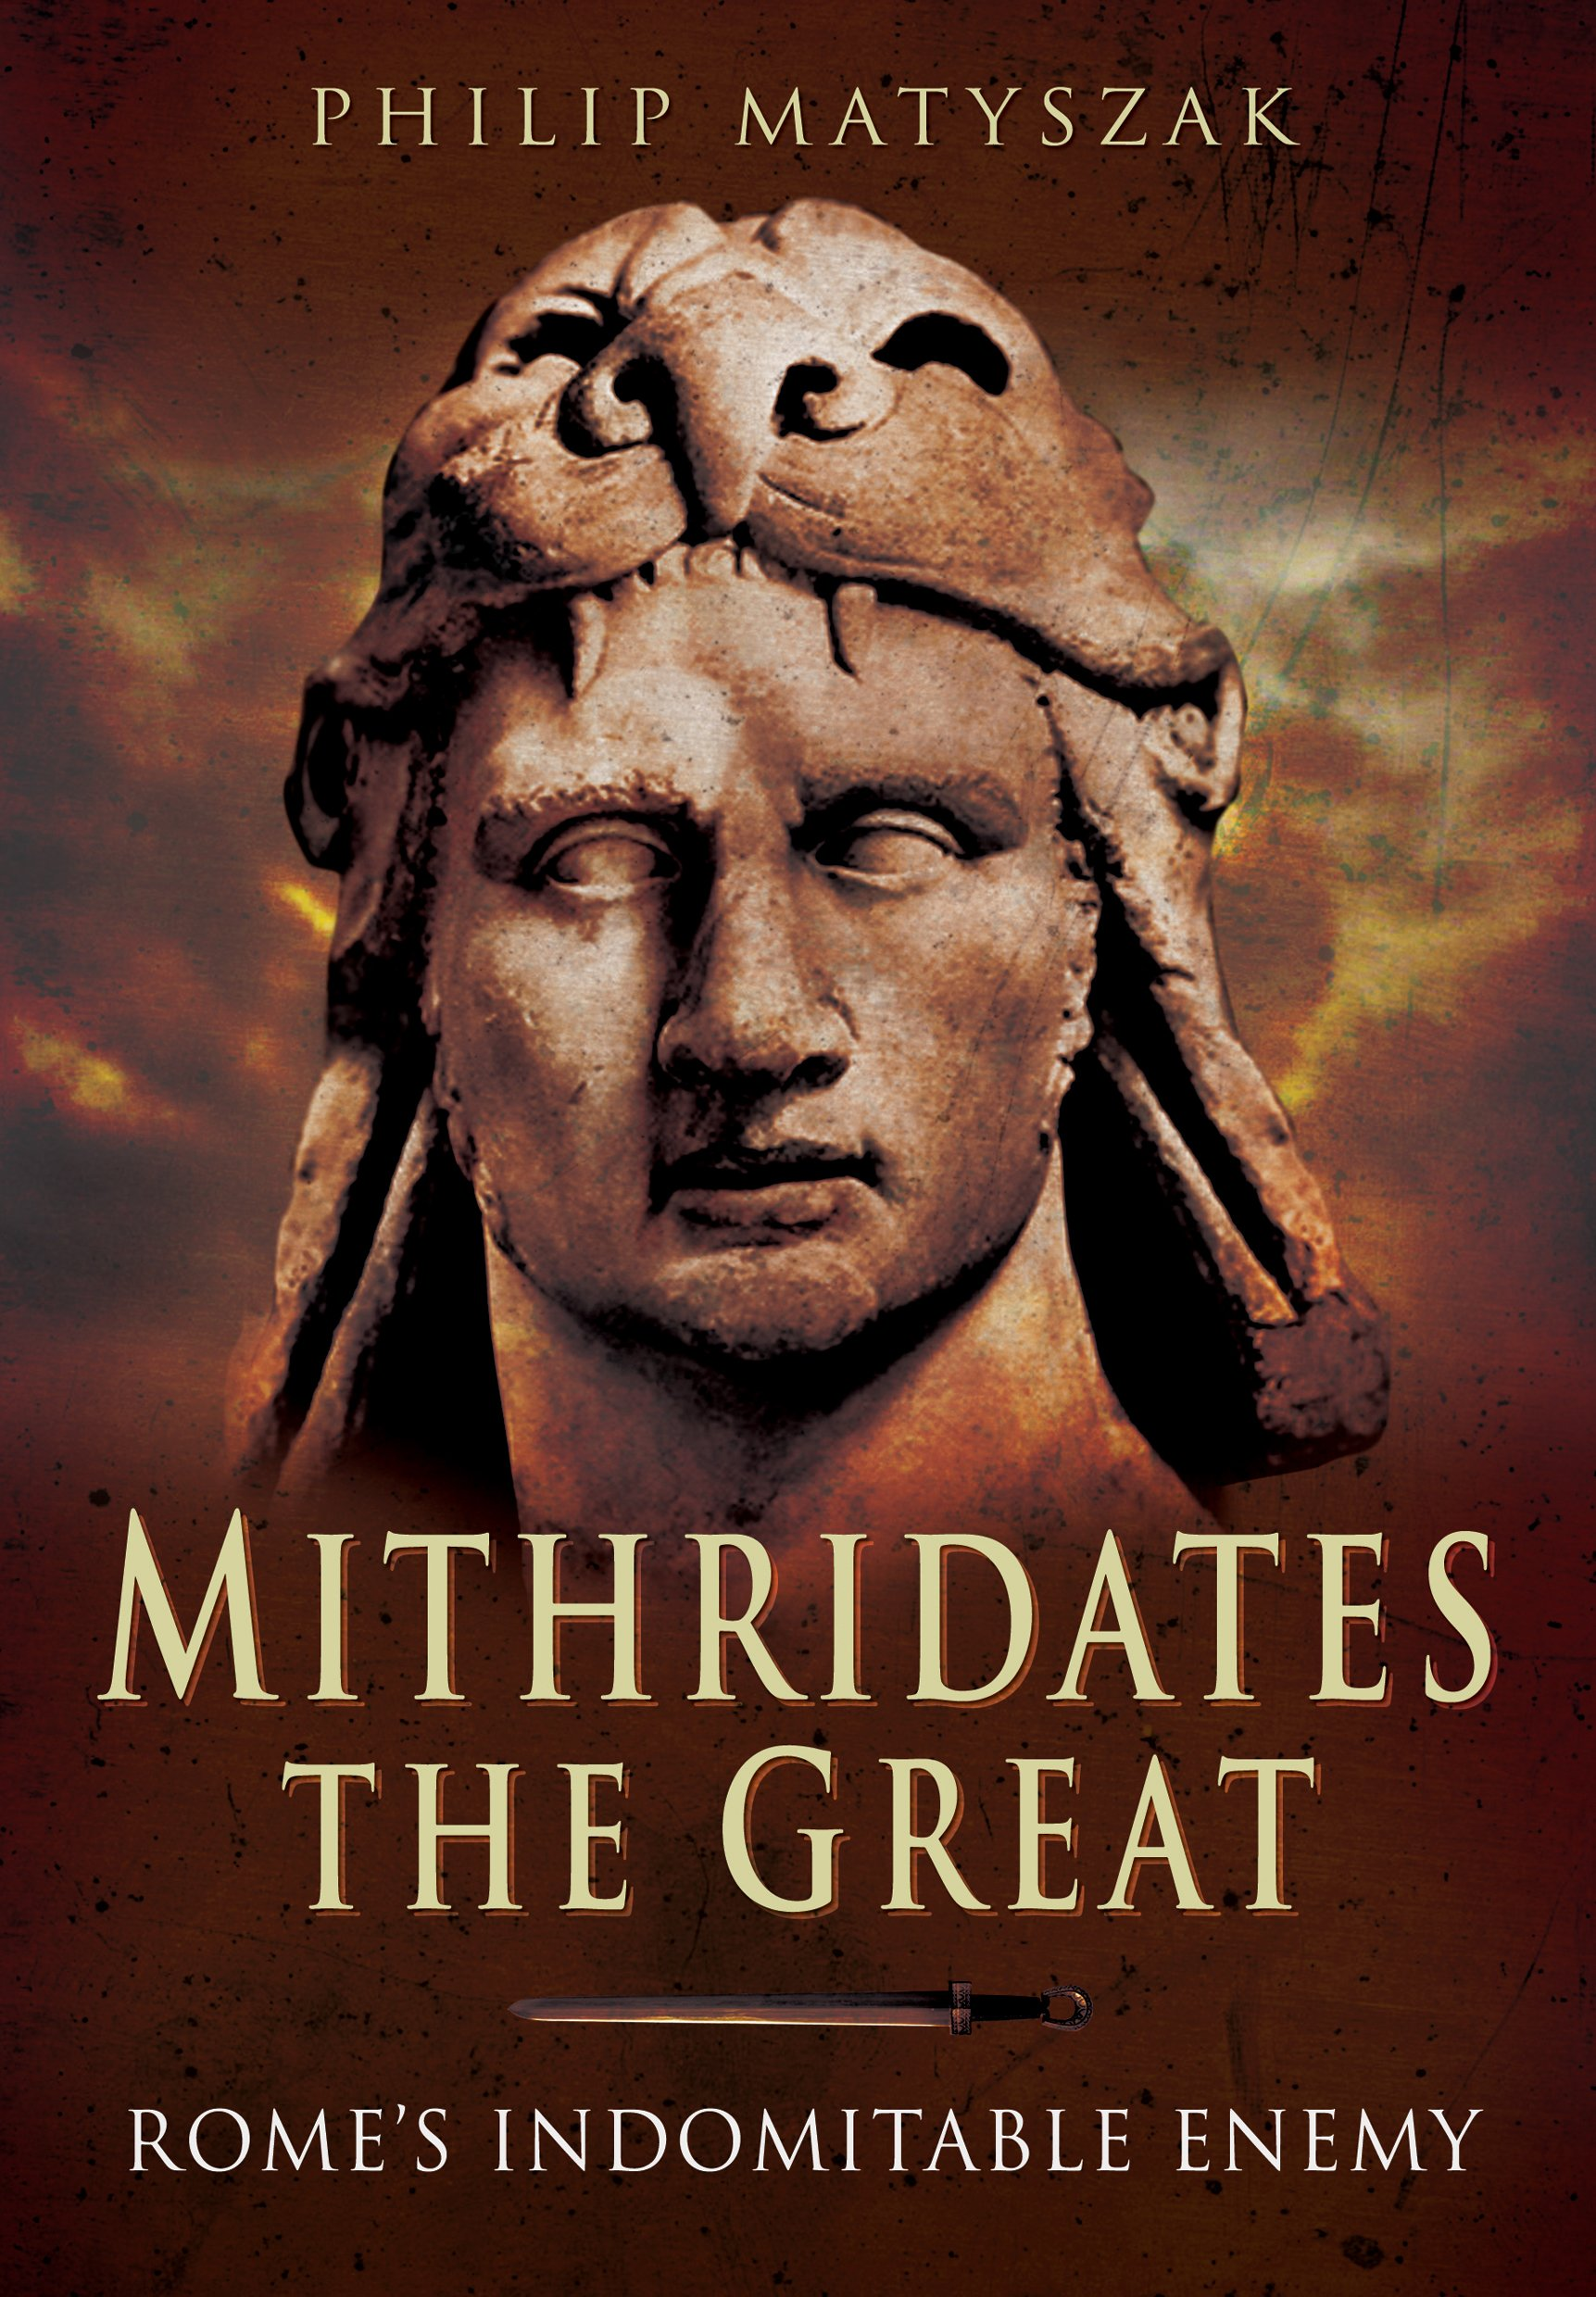 mithridates he died old